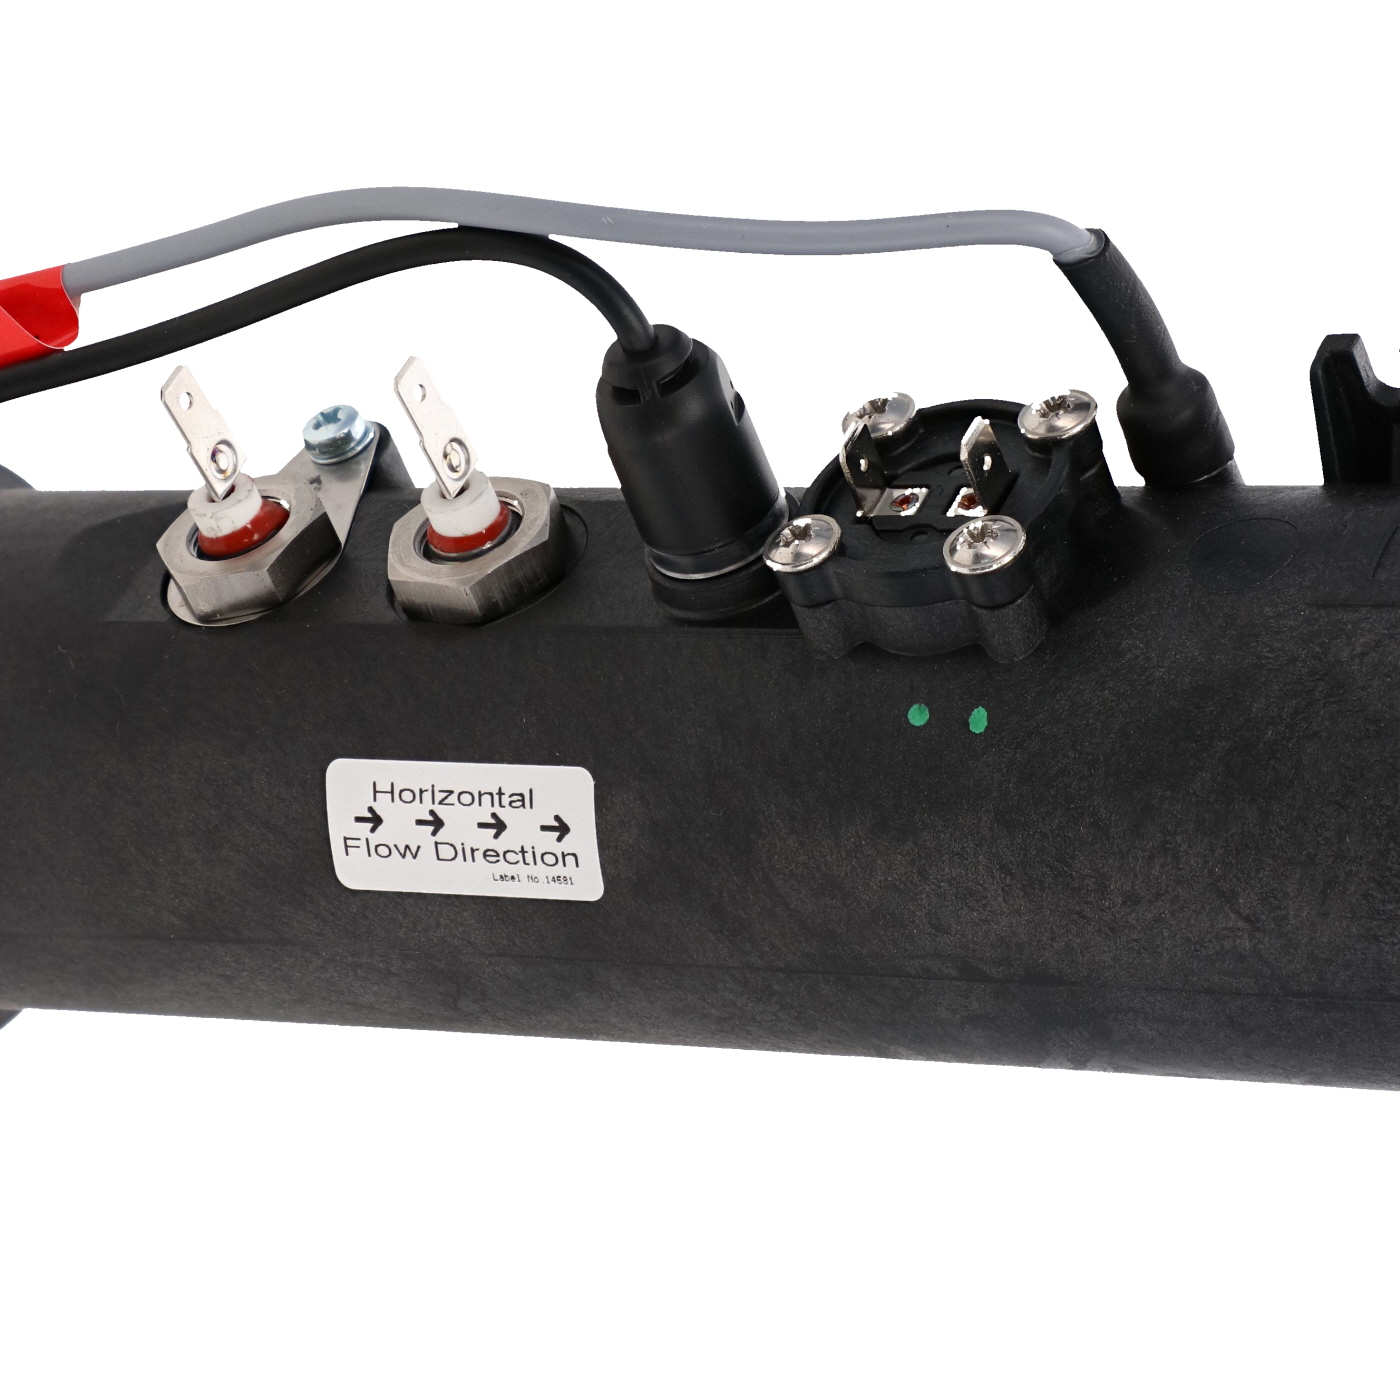 2kW or 3Kw heater for DAVEY SP600 / SP601 / SP800 units